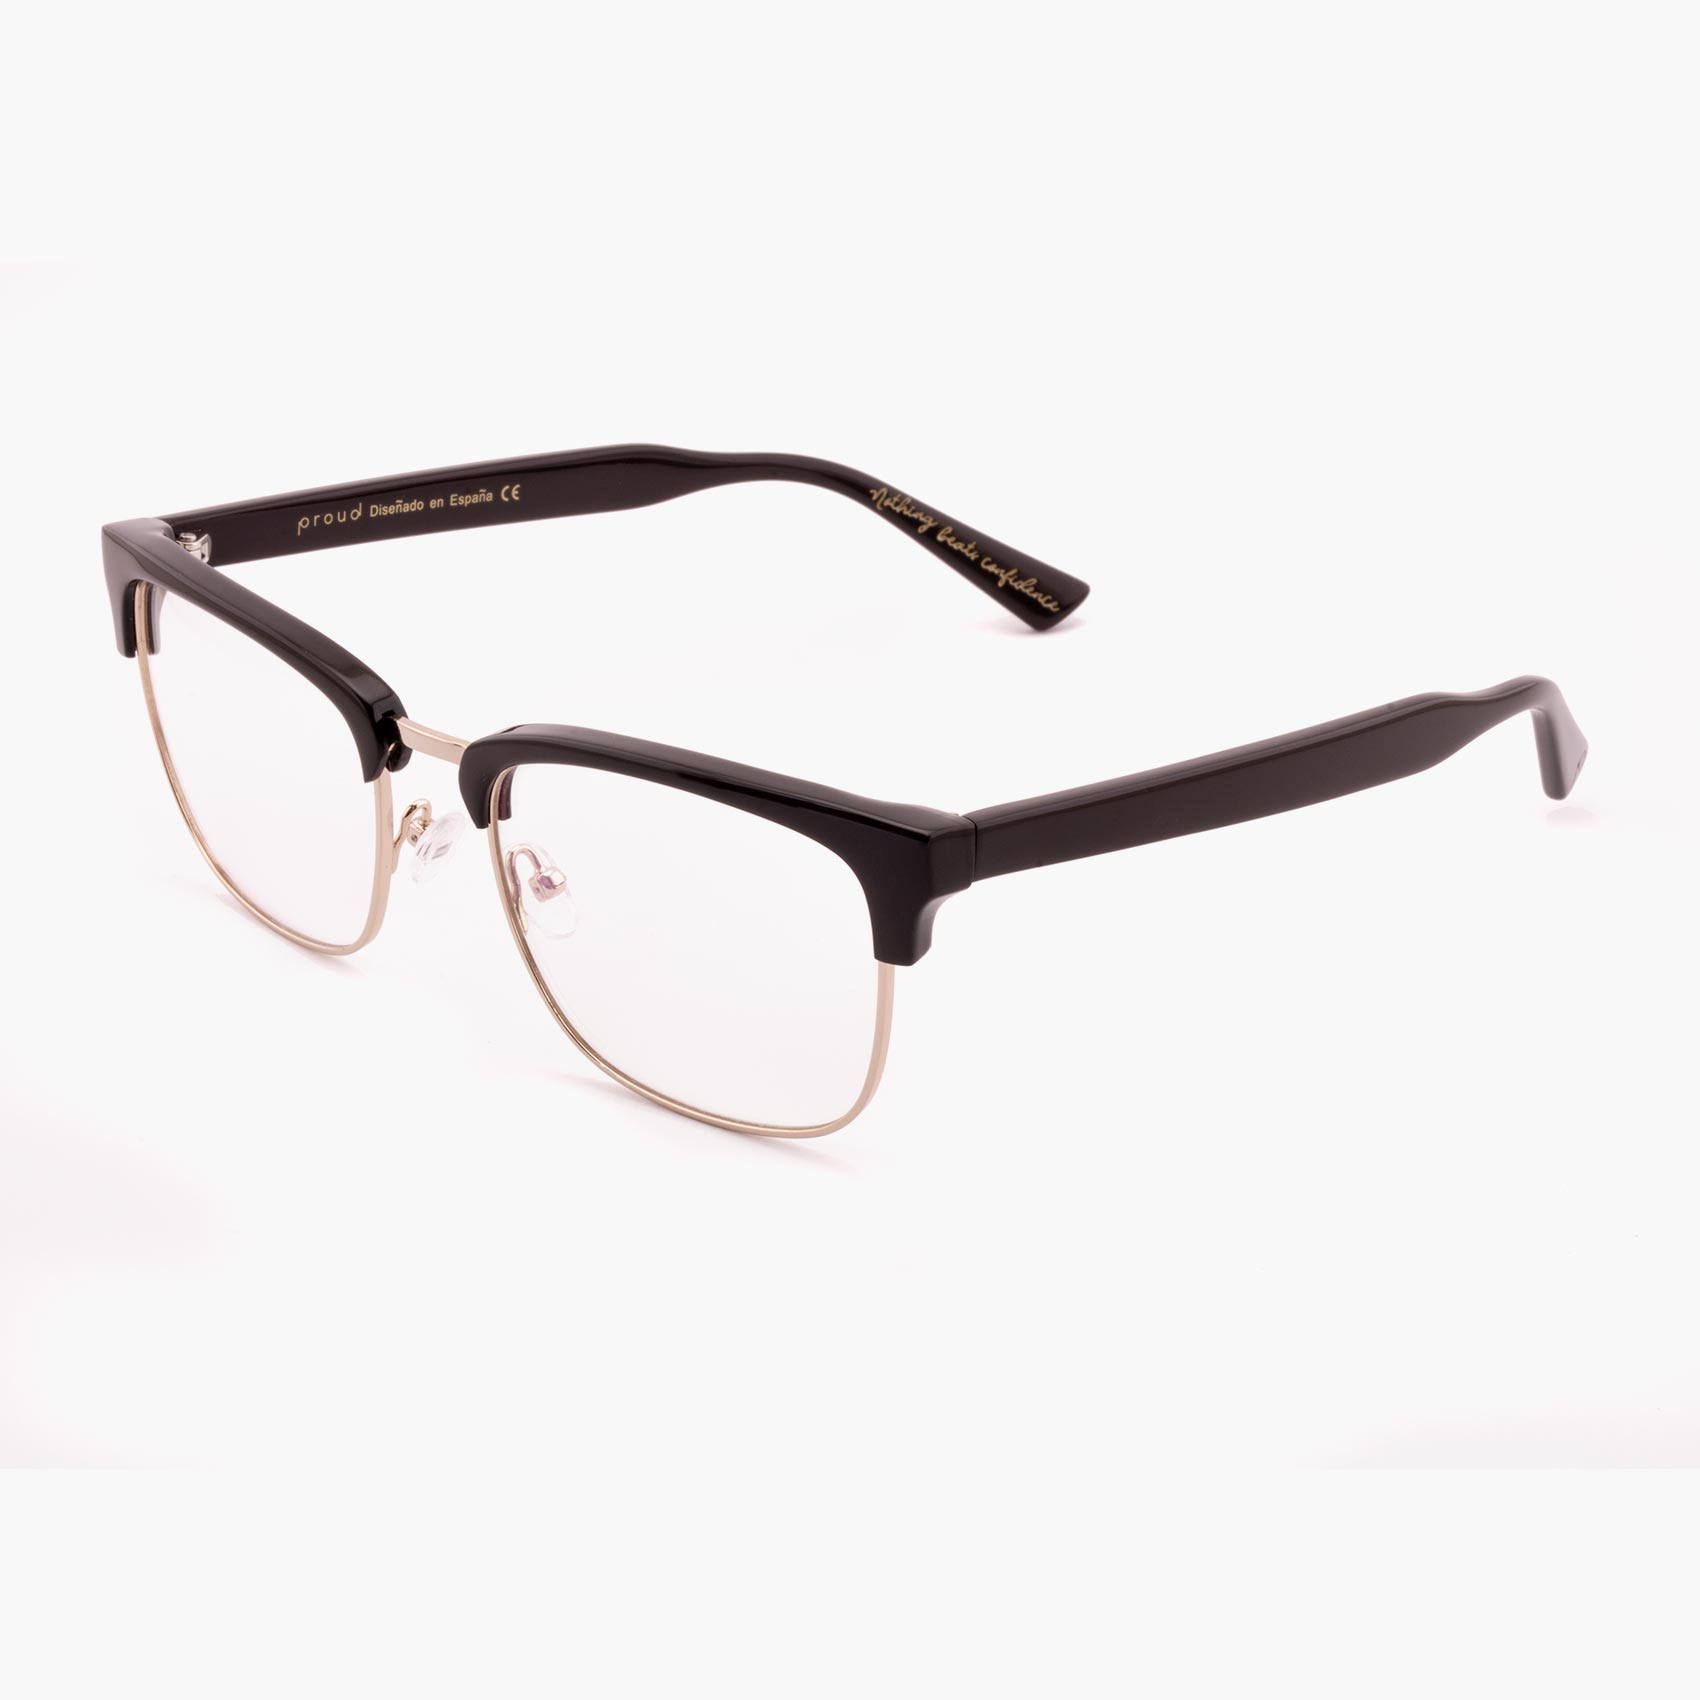 Proud eyewear Hopkins C2 P clubmaster negras